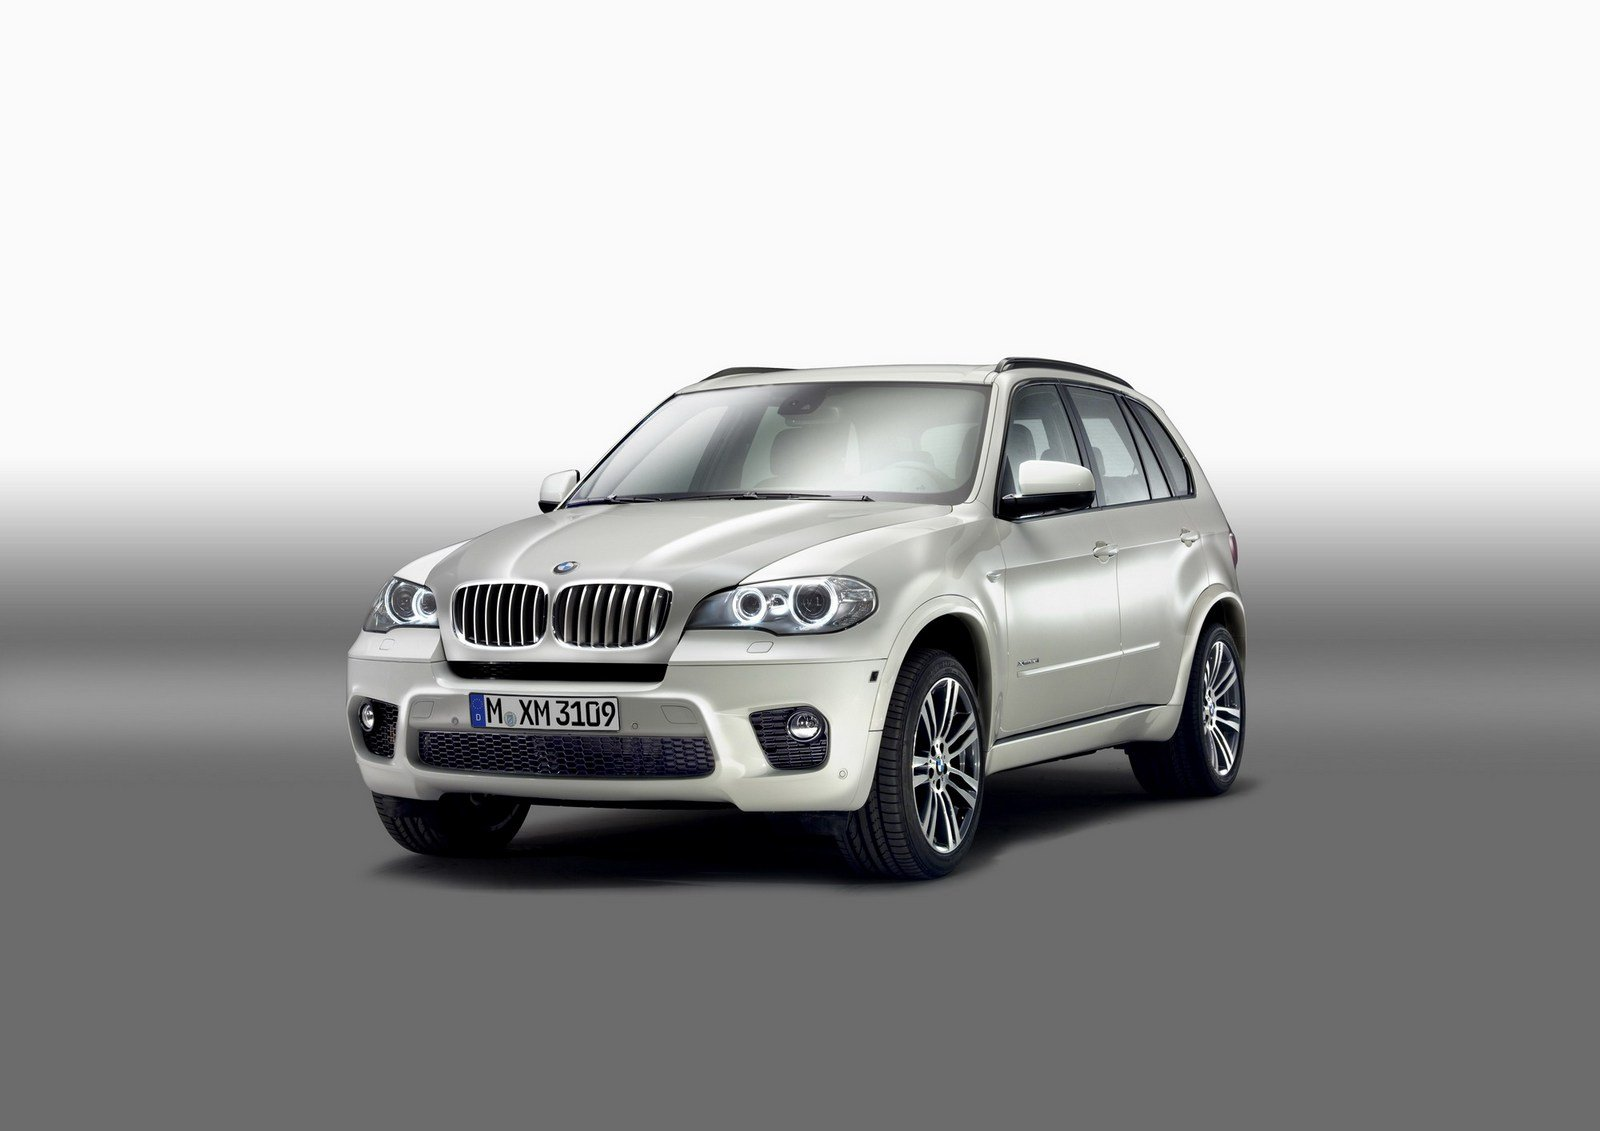 2010 bmw x5 with m sports package review top speed. Black Bedroom Furniture Sets. Home Design Ideas